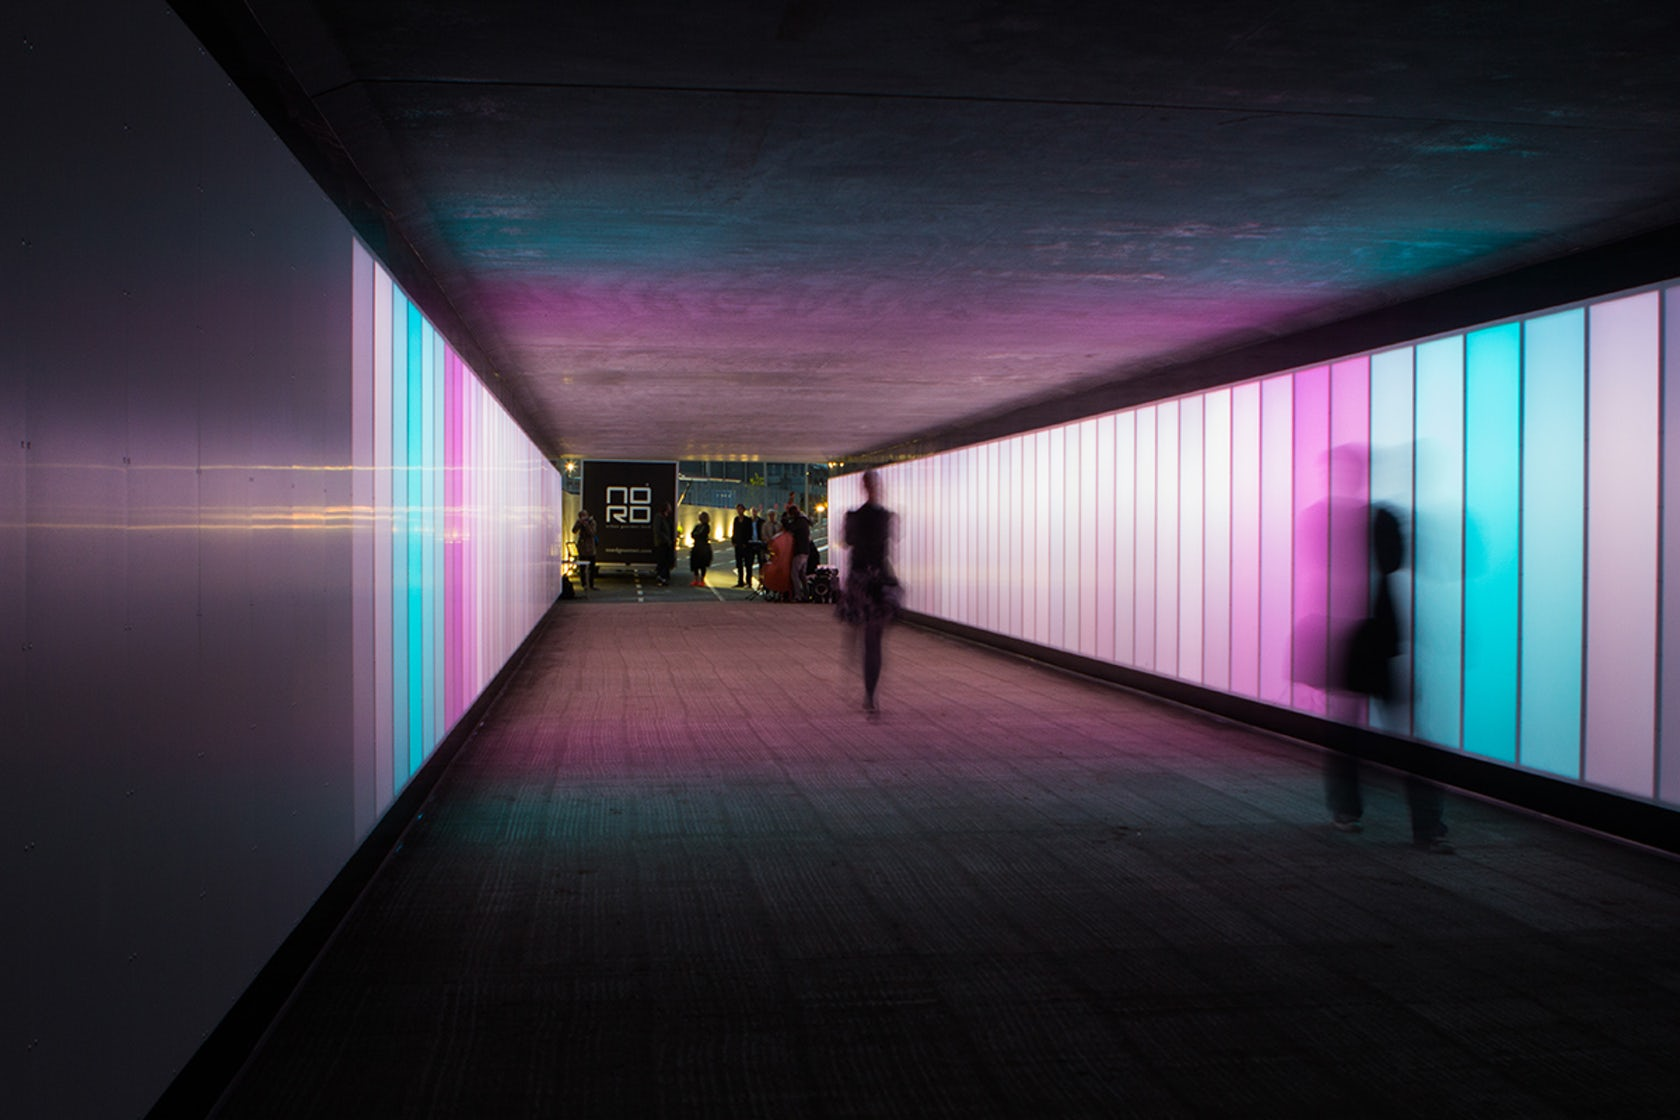 Green Light Auto >> Interference: An Interactive Tunnel - Architizer